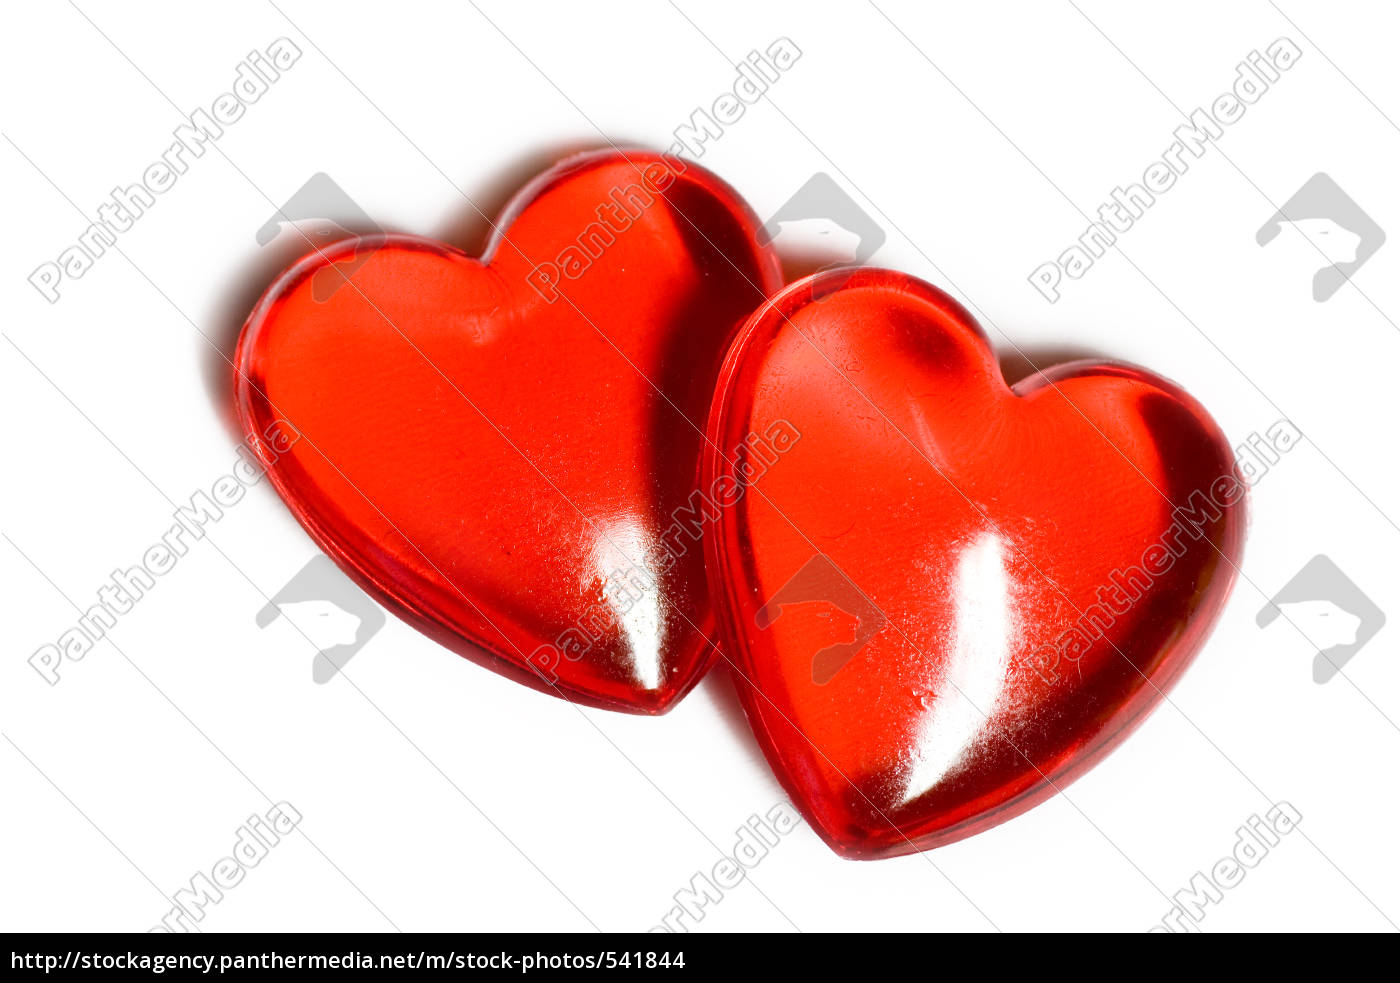 red, hearts - 541844